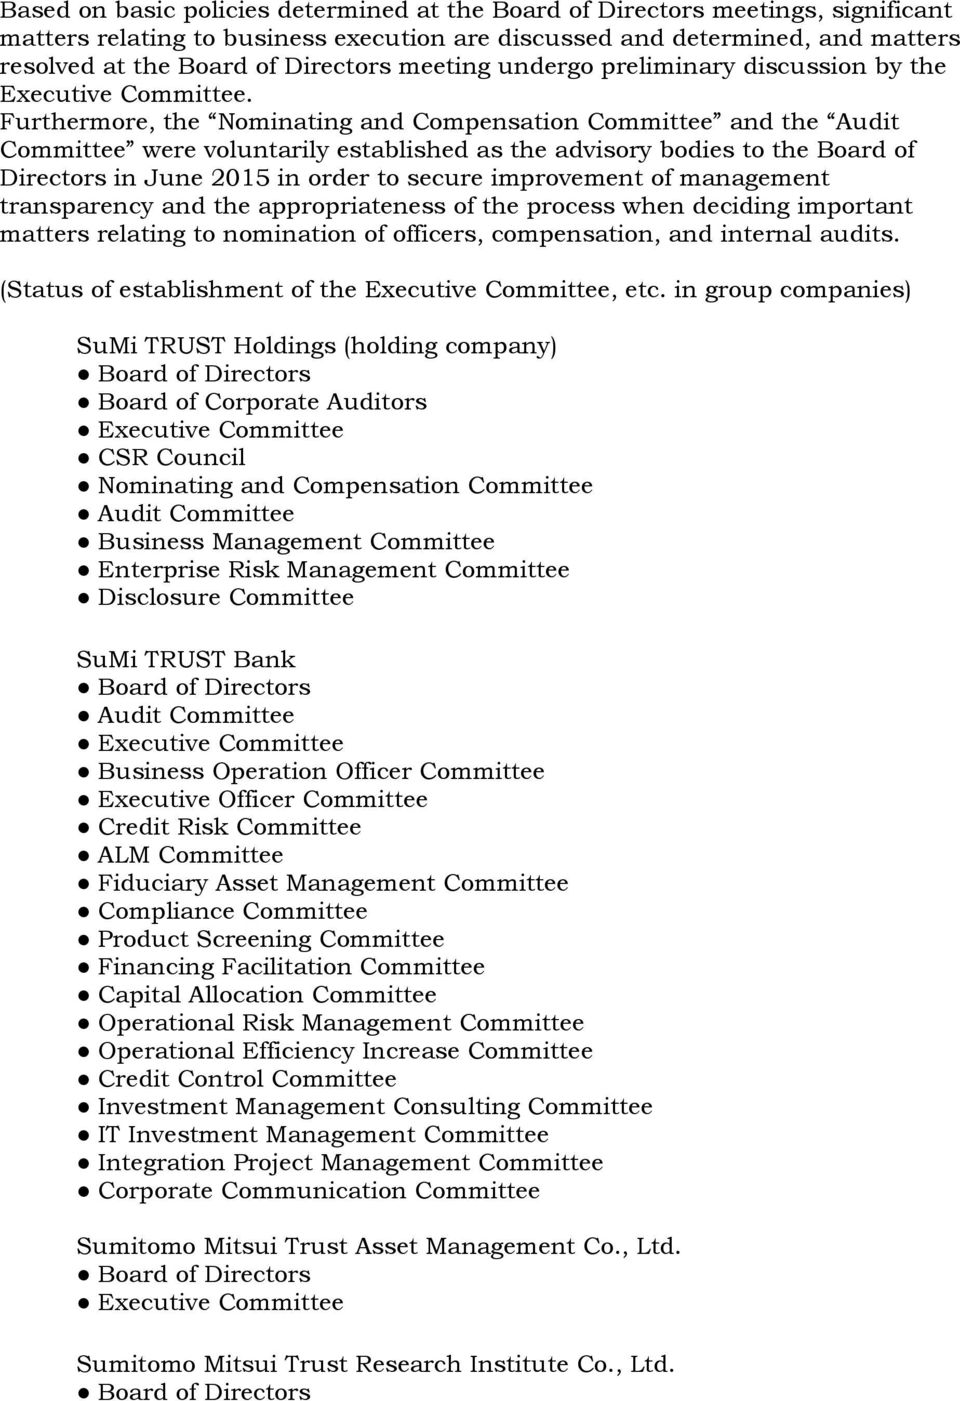 Furthermore, the Nominating and Compensation Committee and the Audit Committee were voluntarily established as the advisory bodies to the Board of Directors in June 2015 in order to secure